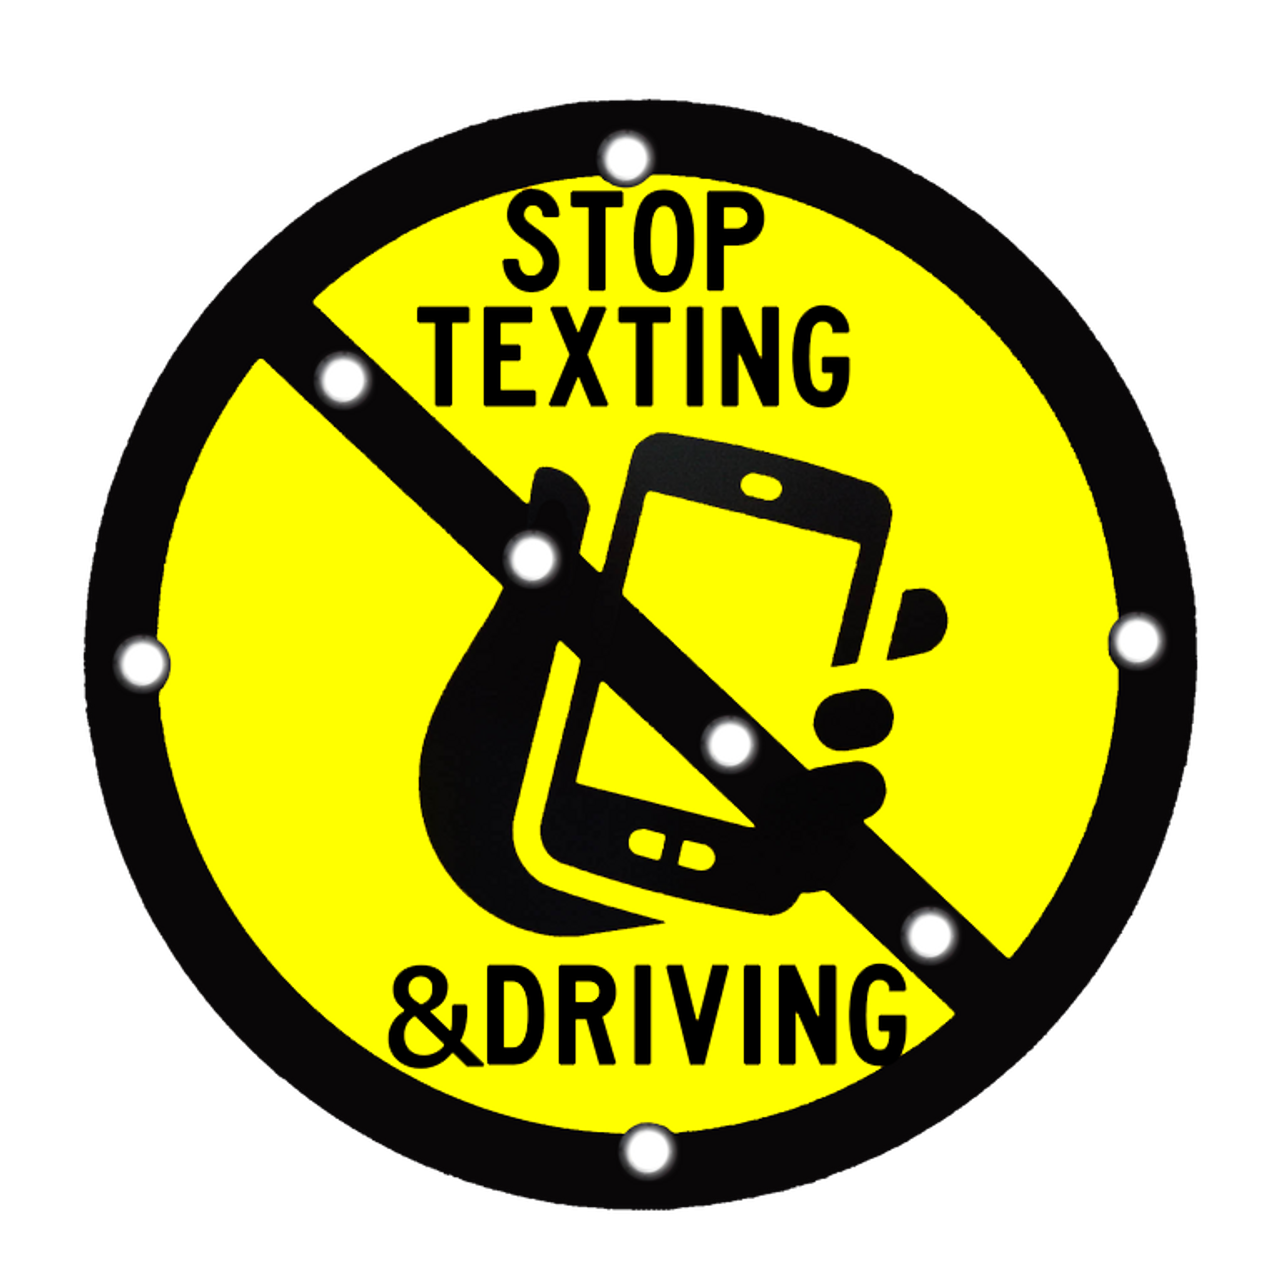 Free preview texting and driving punishment 8